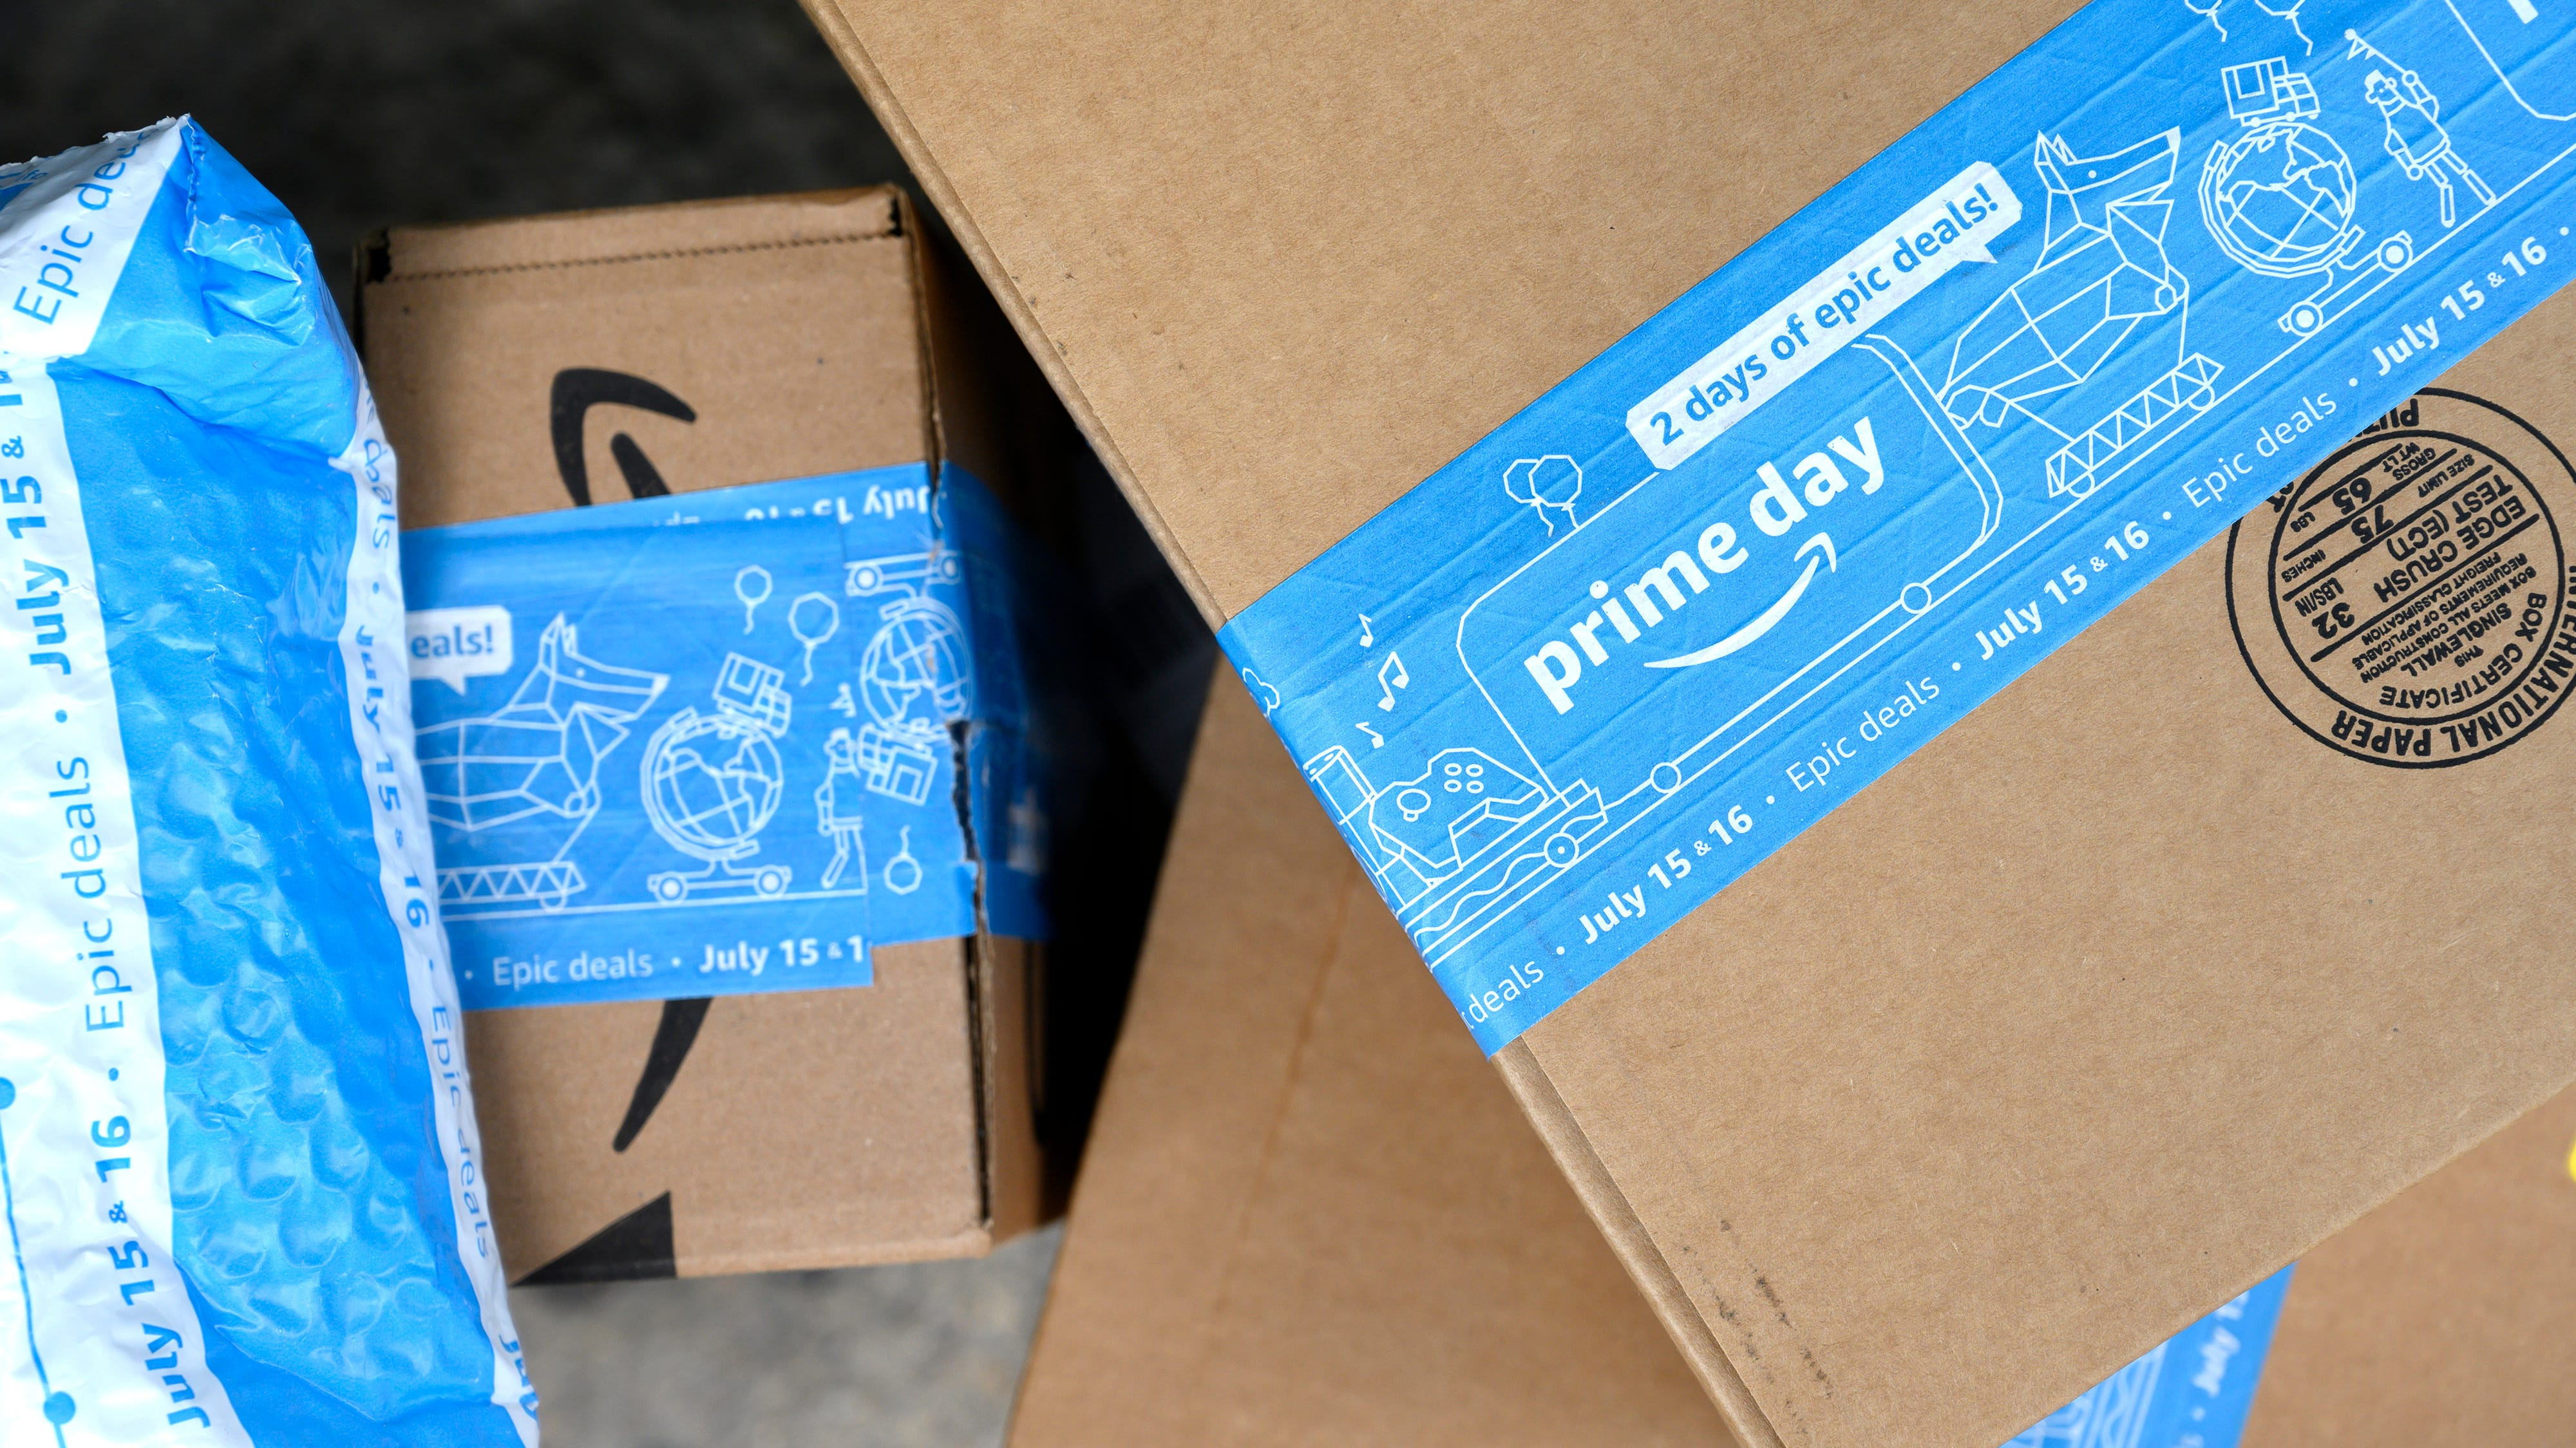 Amazon Prime Day 2019 The Best Home Improvement Tool And Diy Deals